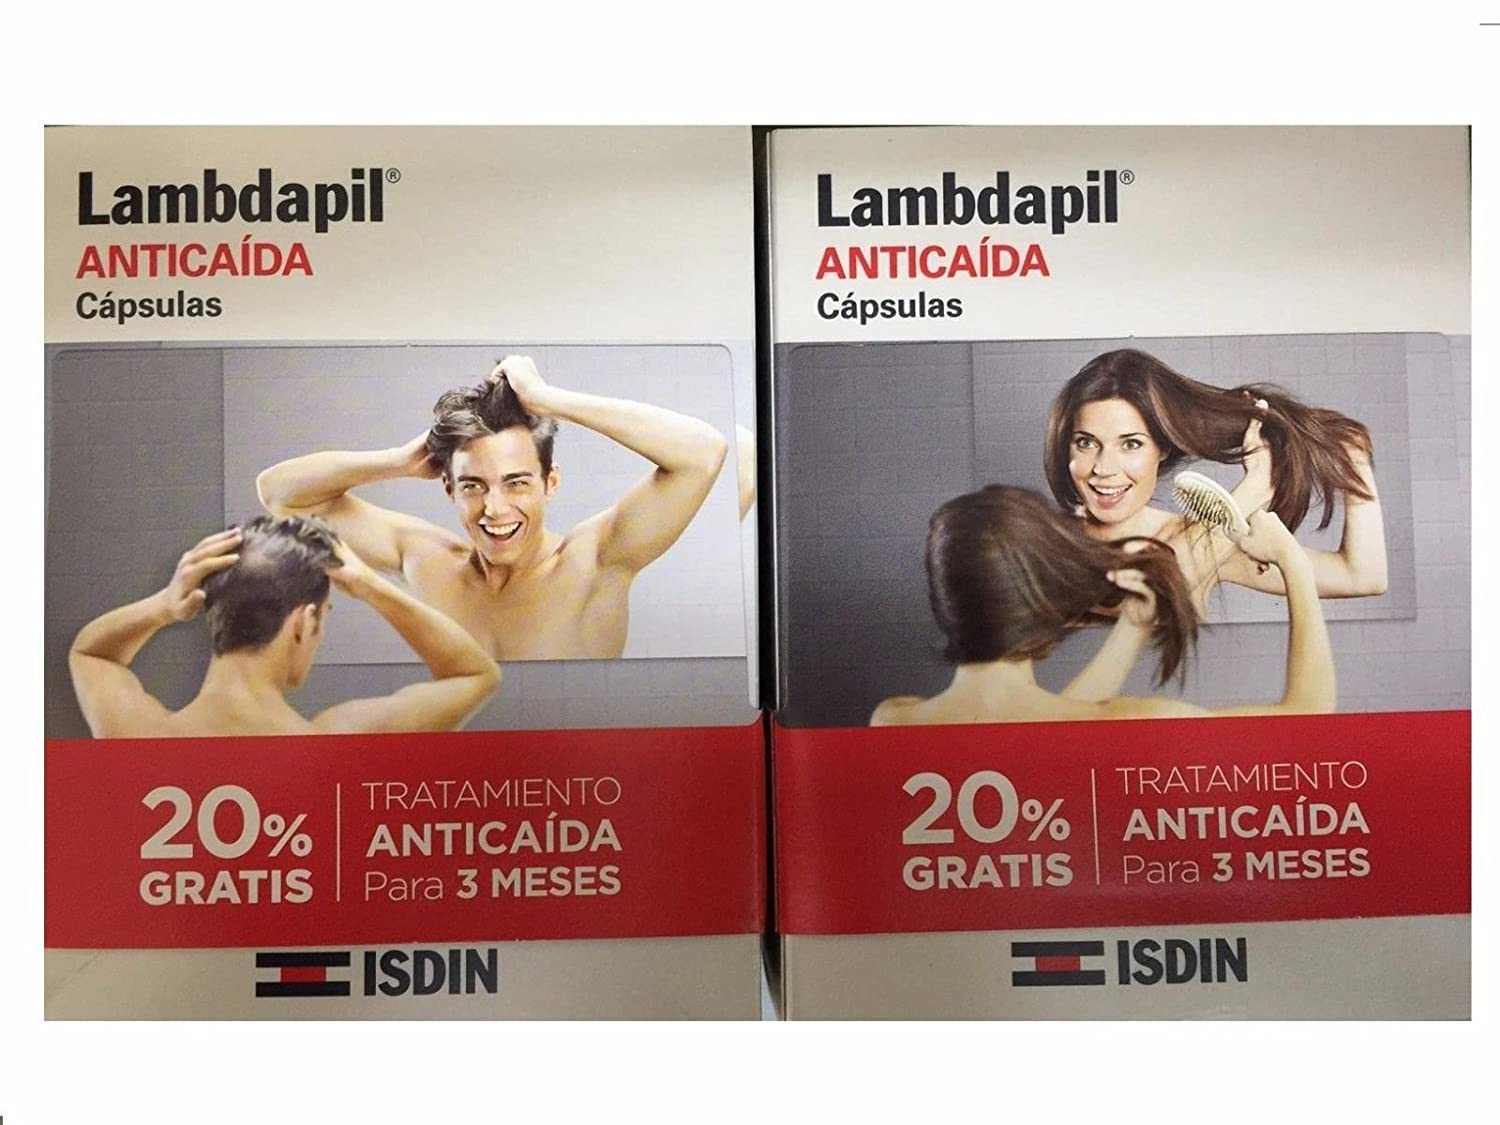 Amazon.com: ISDIN LAMBDAPIL ANTICAIDA 180 capsulas MINESKIN TREATMENT: Beauty